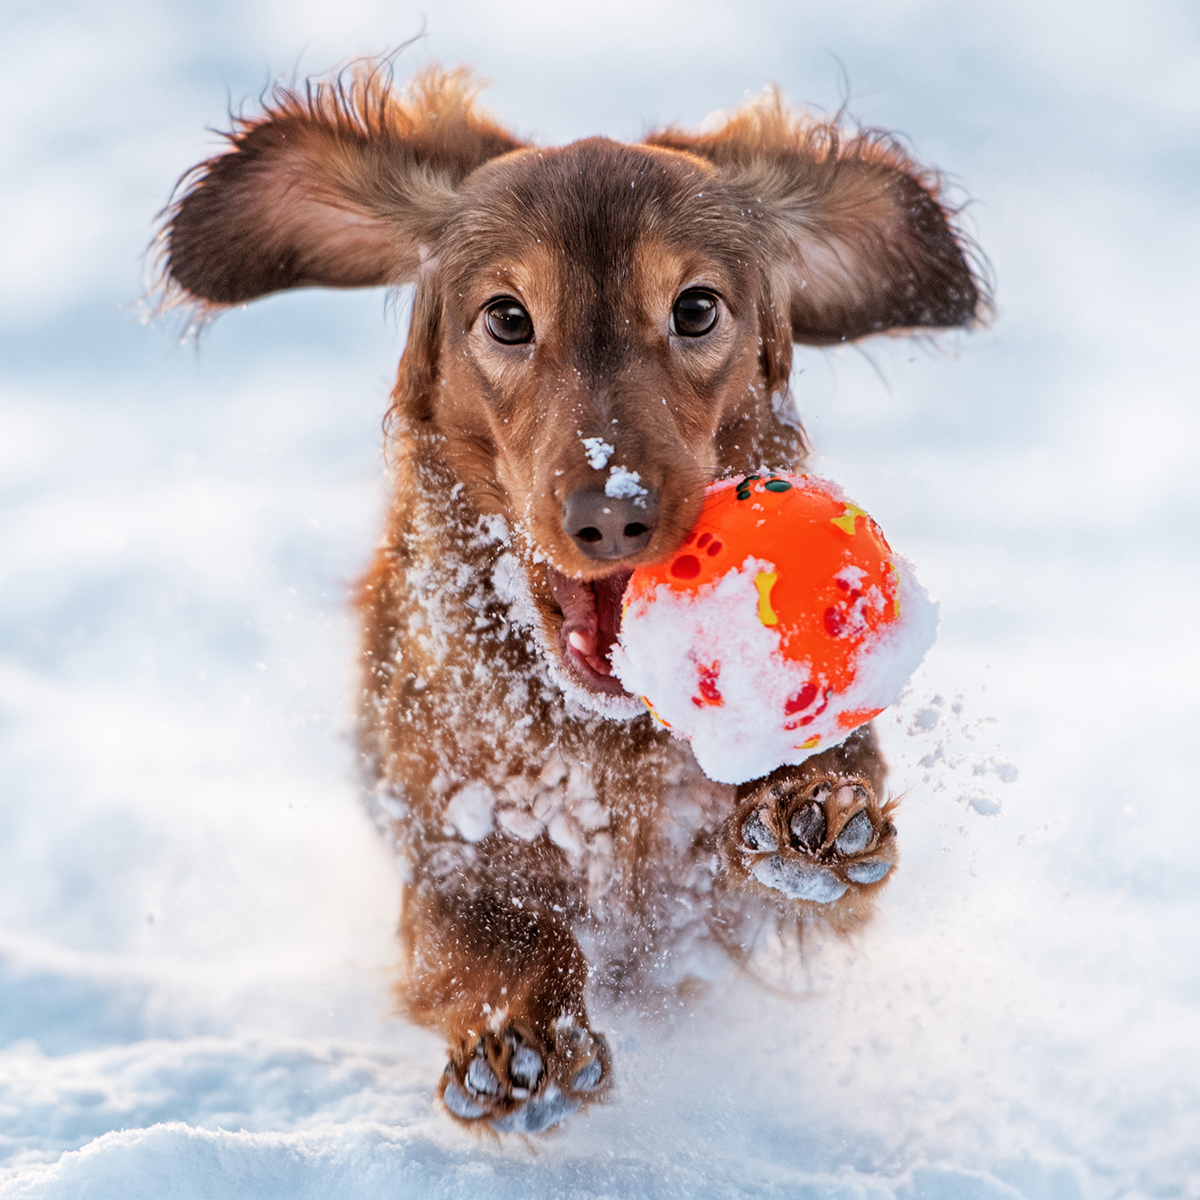 8 Rules for Keeping Pets Safe in the Winter